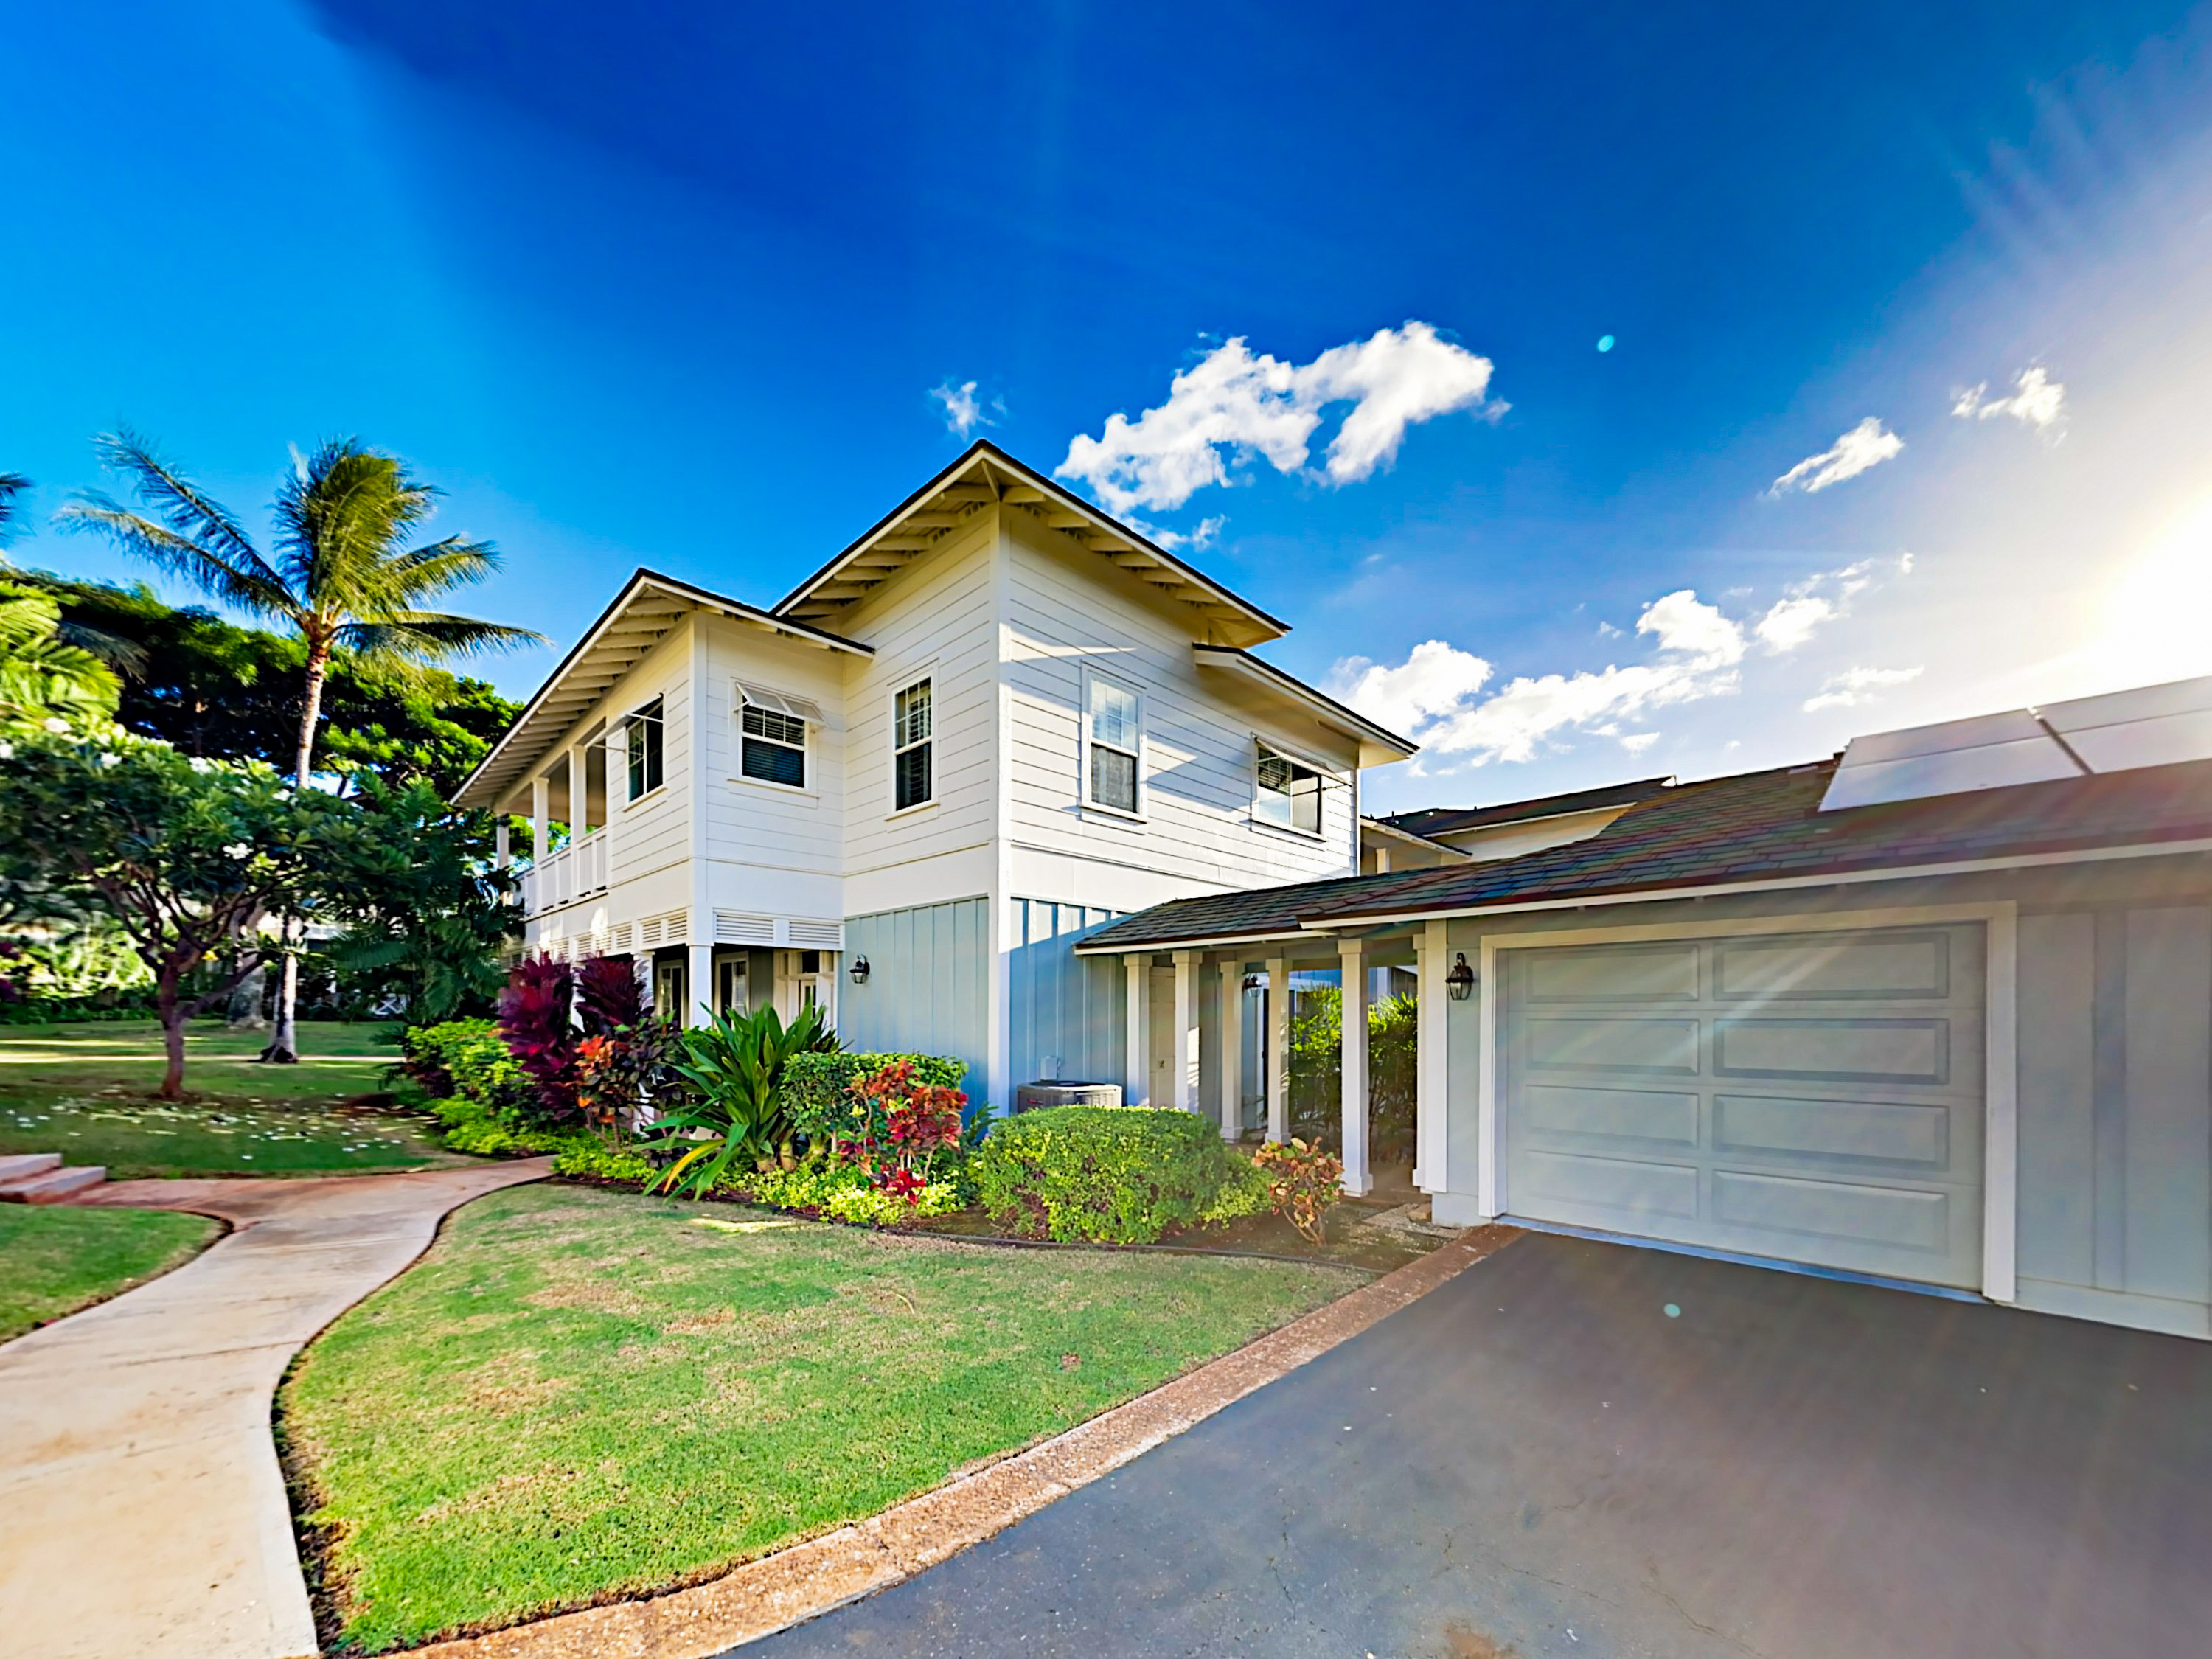 Kapolei HI Vacation Rental Welcome to Coconut